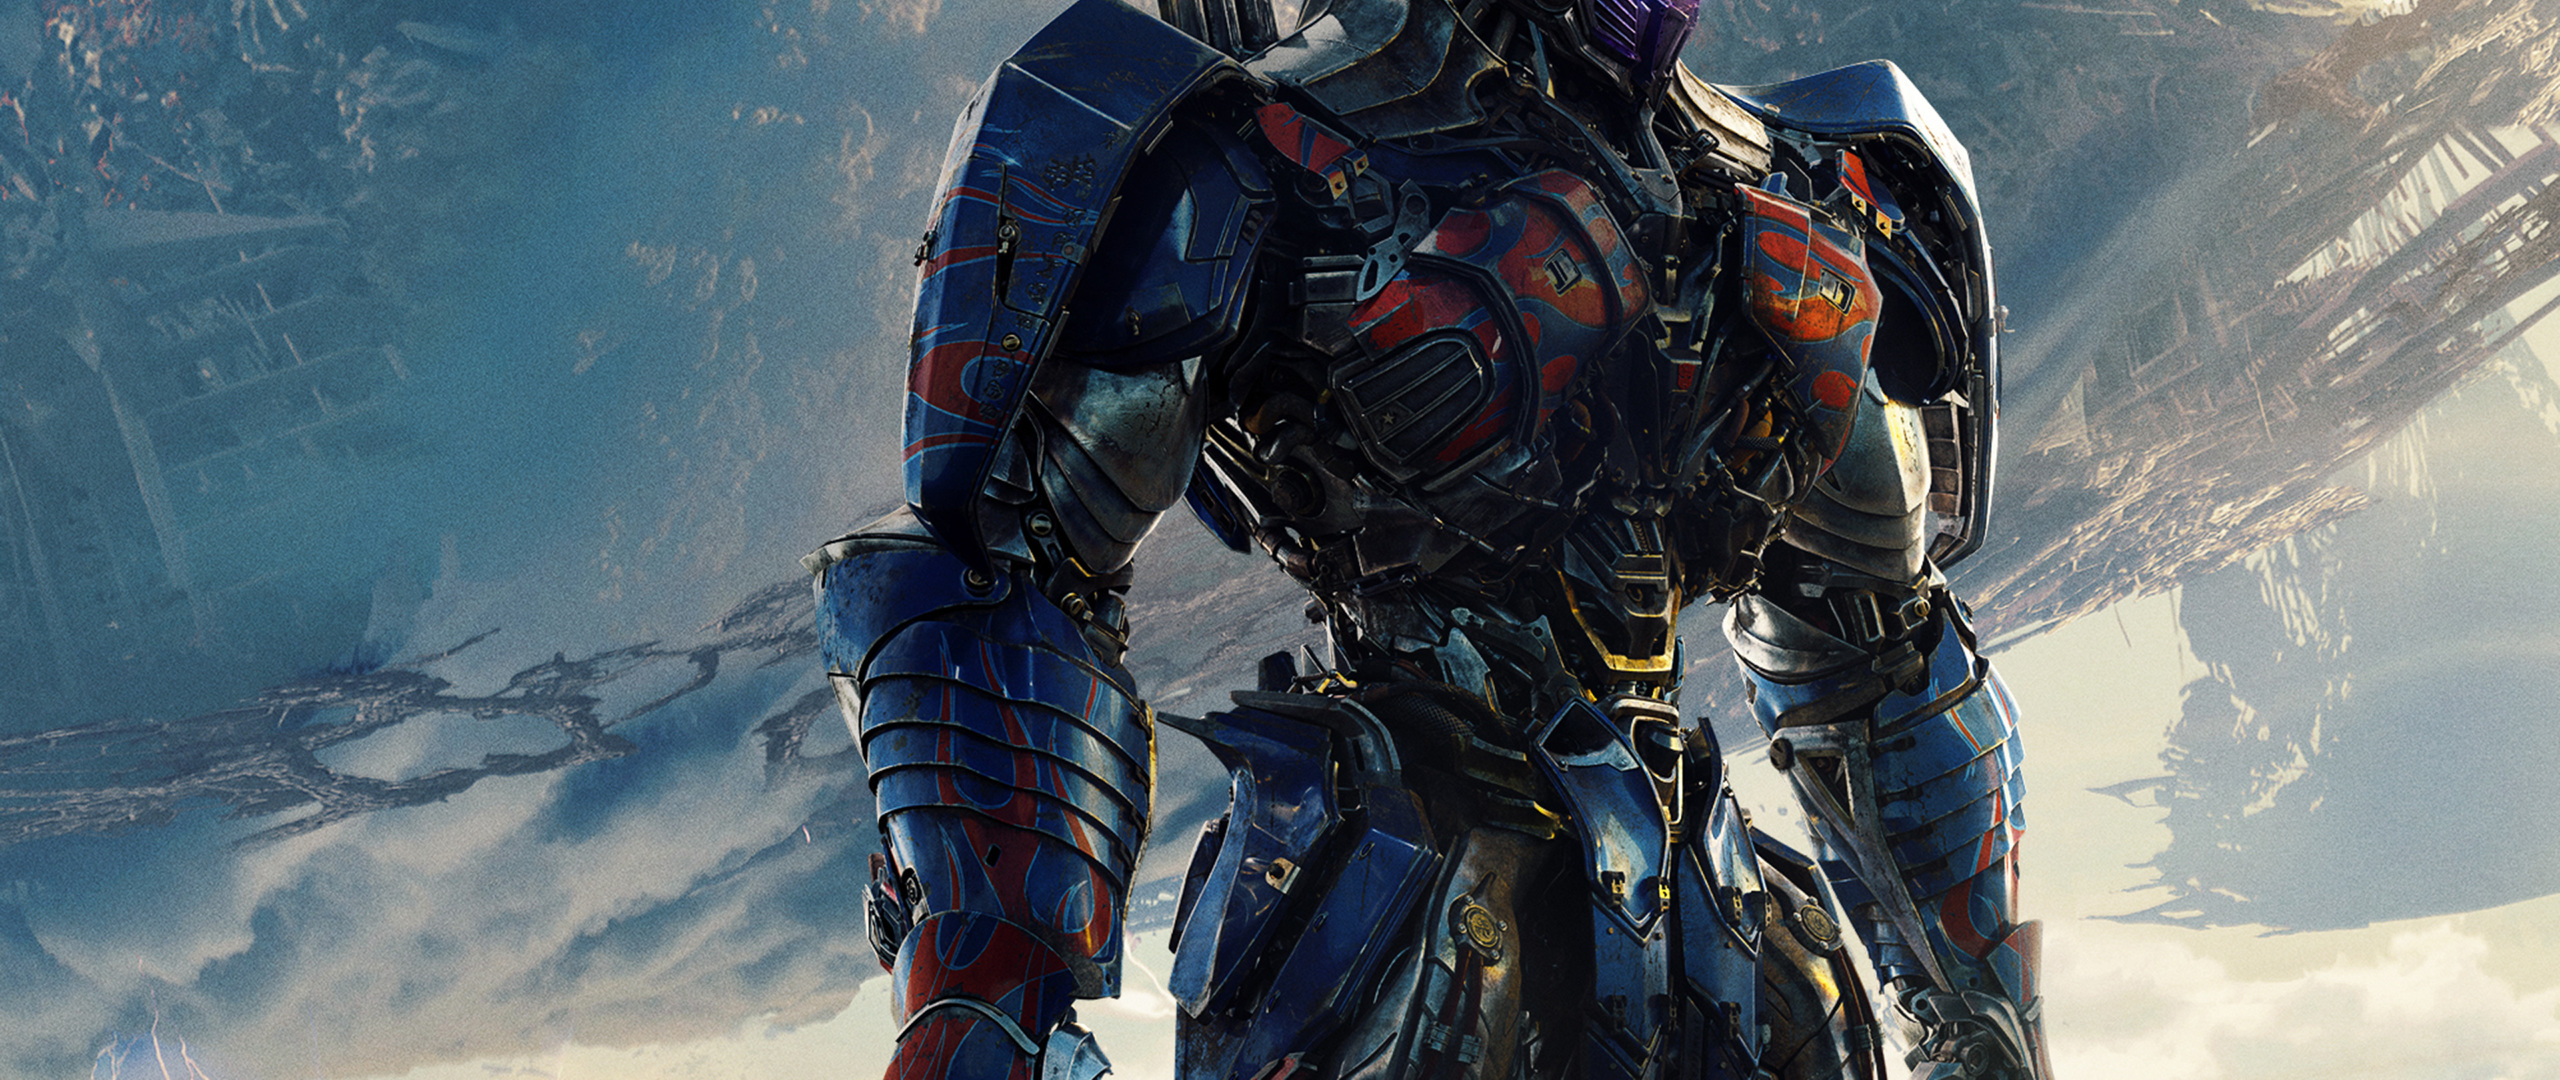 Transformers The Last Knight 2017 Movie Still, HD 4K Wallpaper